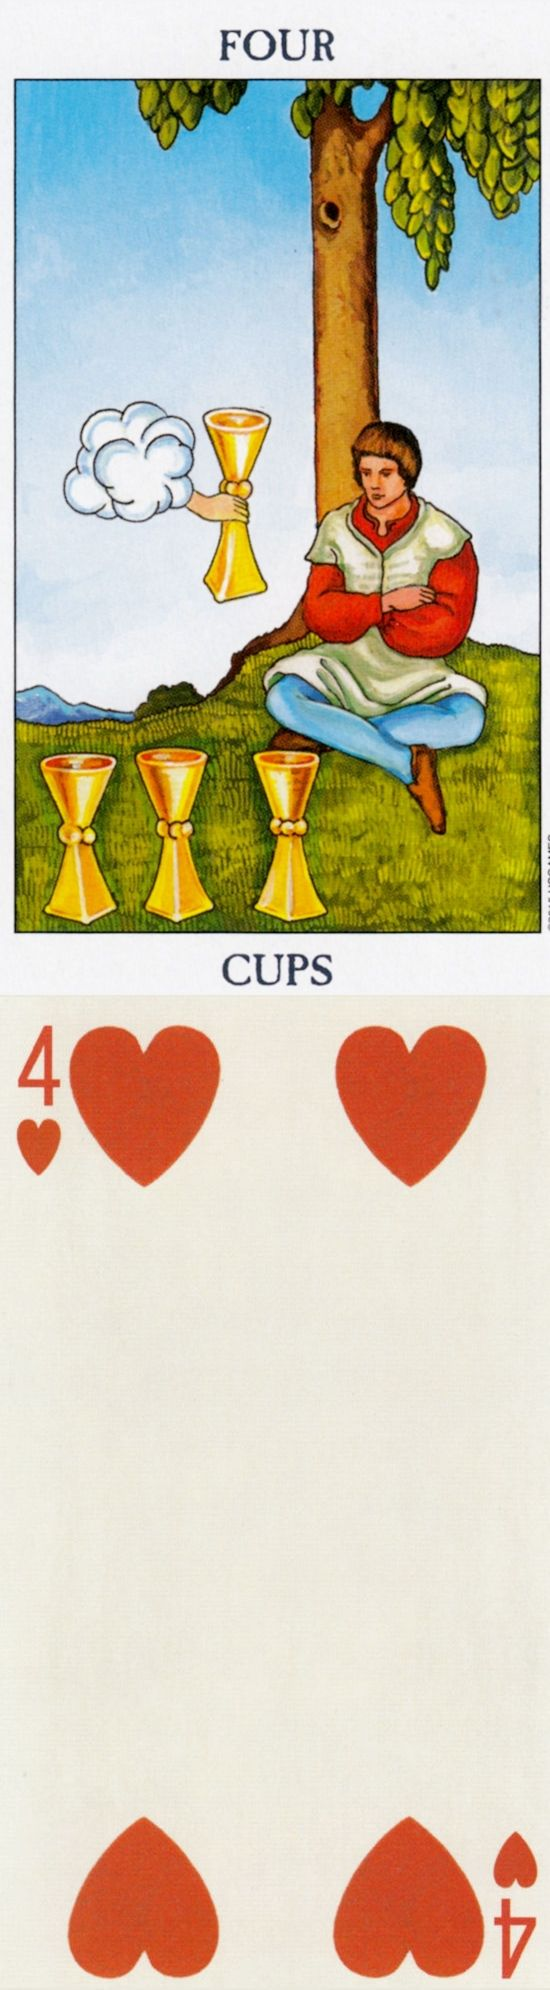 Four of Cups: ignoring potential joys and boredom (reverse). Radiant Tarot deck and Brut Tarot Tarot deck: astrology tarot reading free, tarot for dummies and lotus tarot online reading. Best 2018 paganism art and wiccan marvel. #astrologyonline